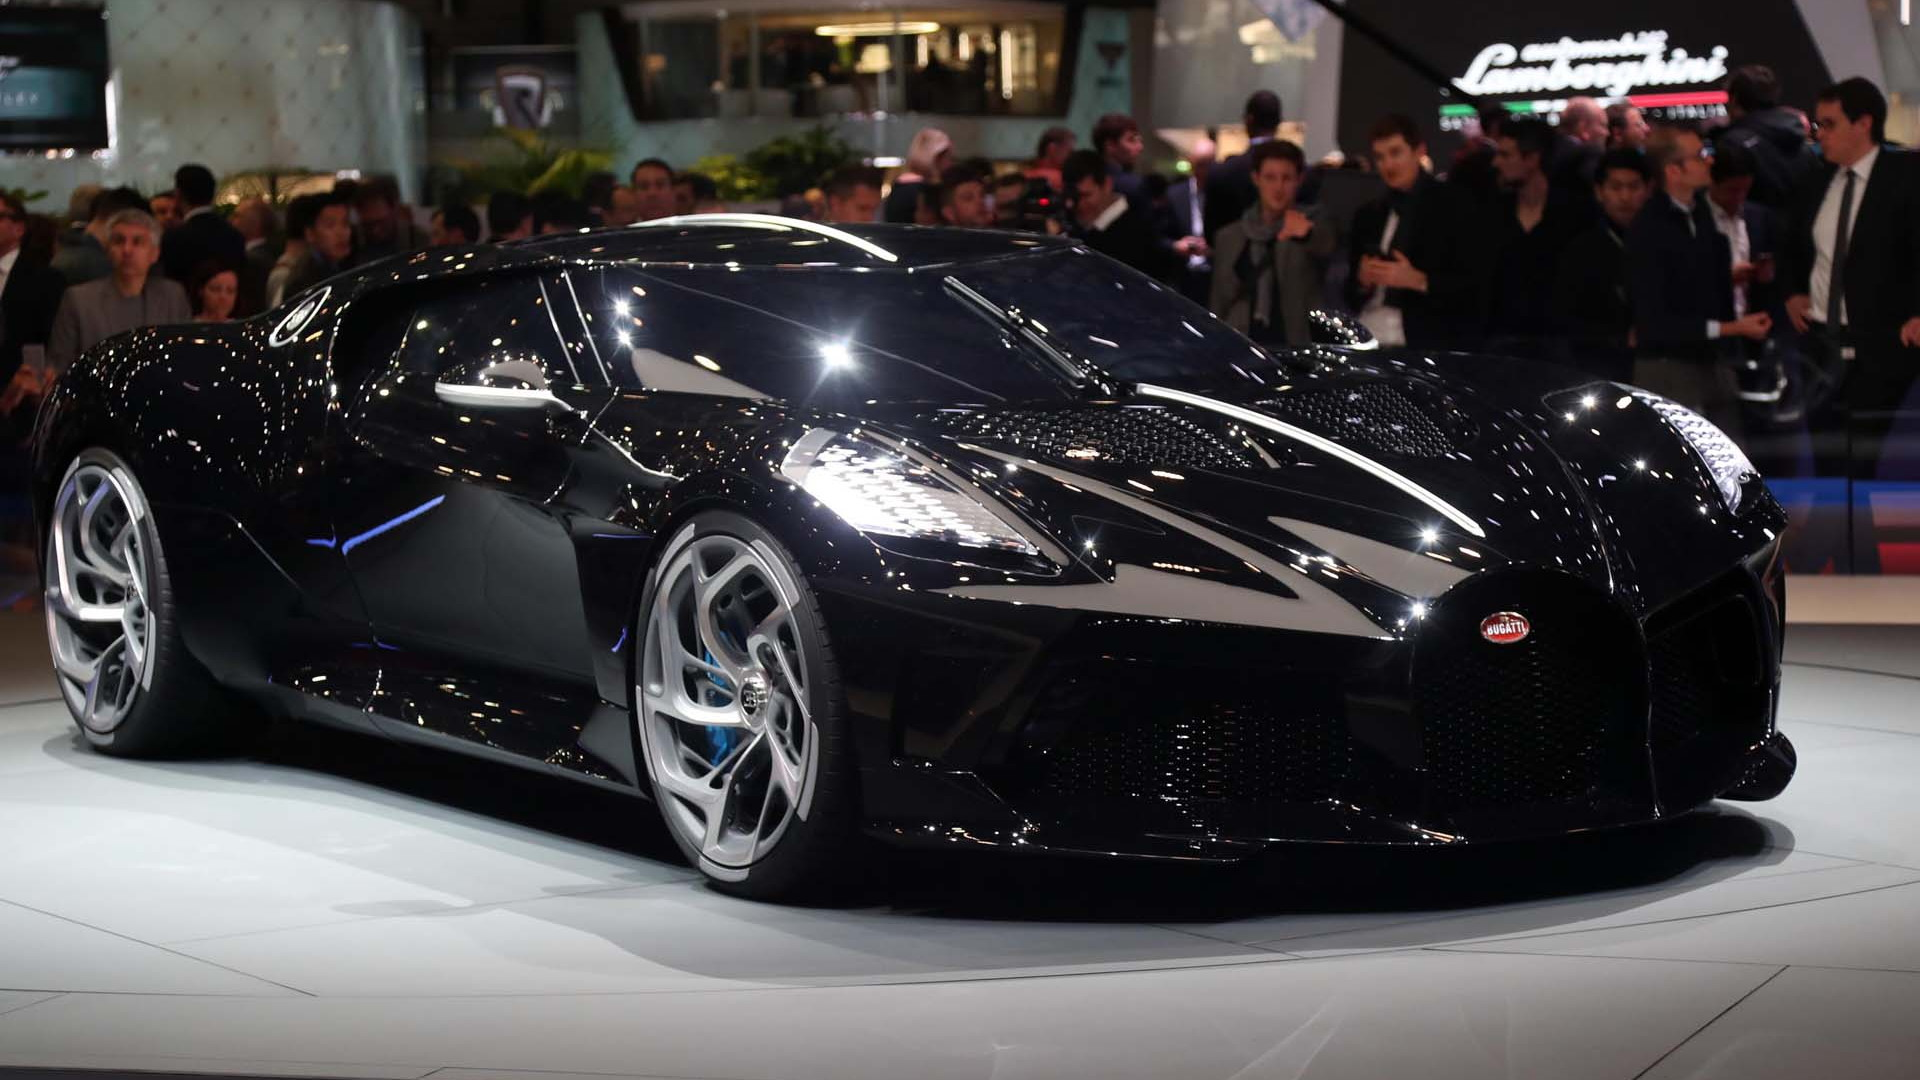 Bugatti La Voiture Noire A 124 Million Celebration Of The